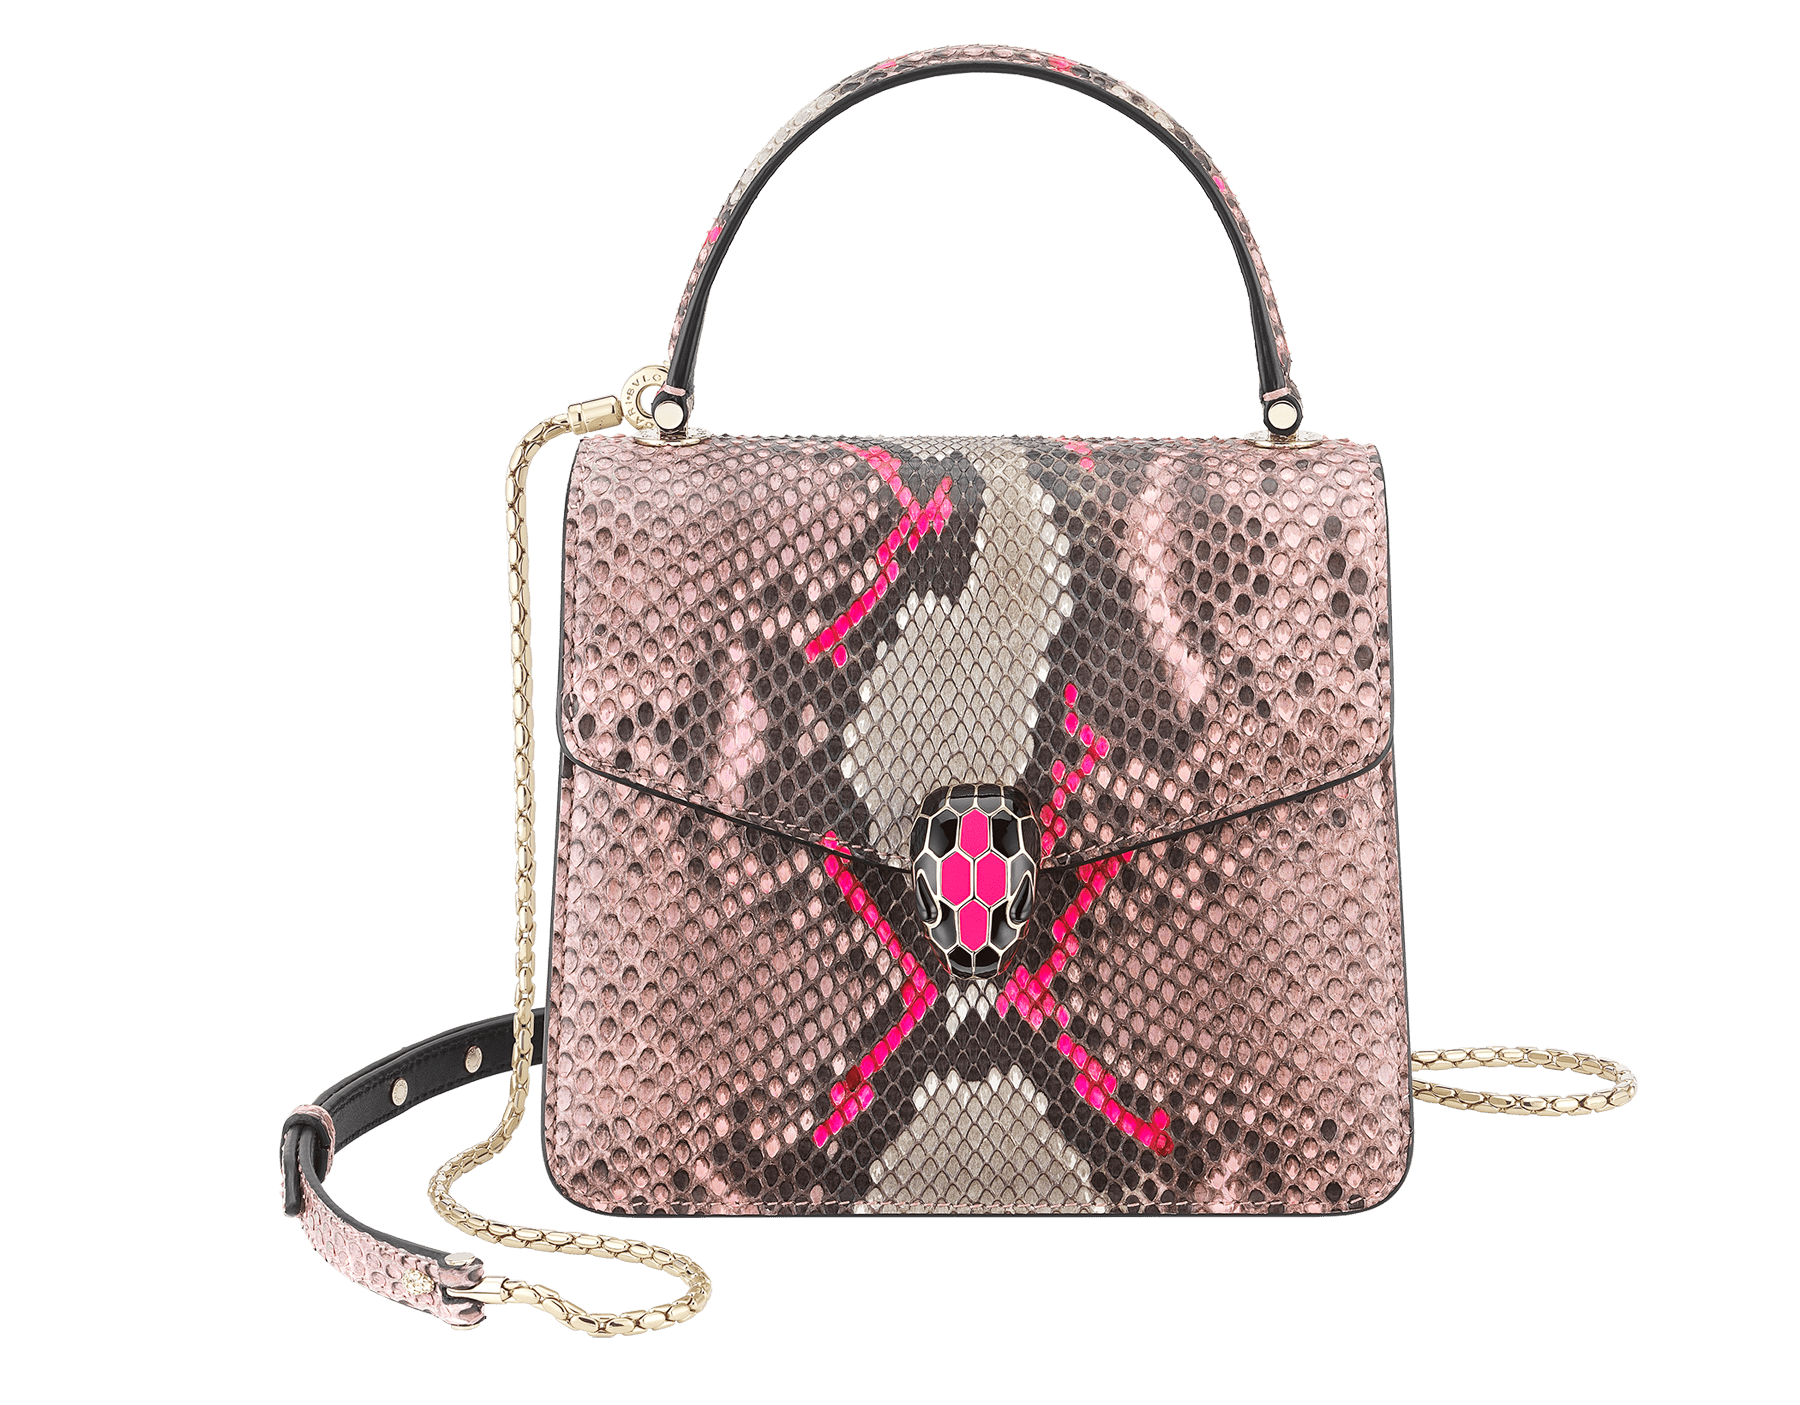 Serpenti Forever crossbody bag in black and white python skin with Whitethunder motif. Snakehead closure in shiny palladium plated brass decorated with black enamel, and black onyx eyes. 752-Pa image 1